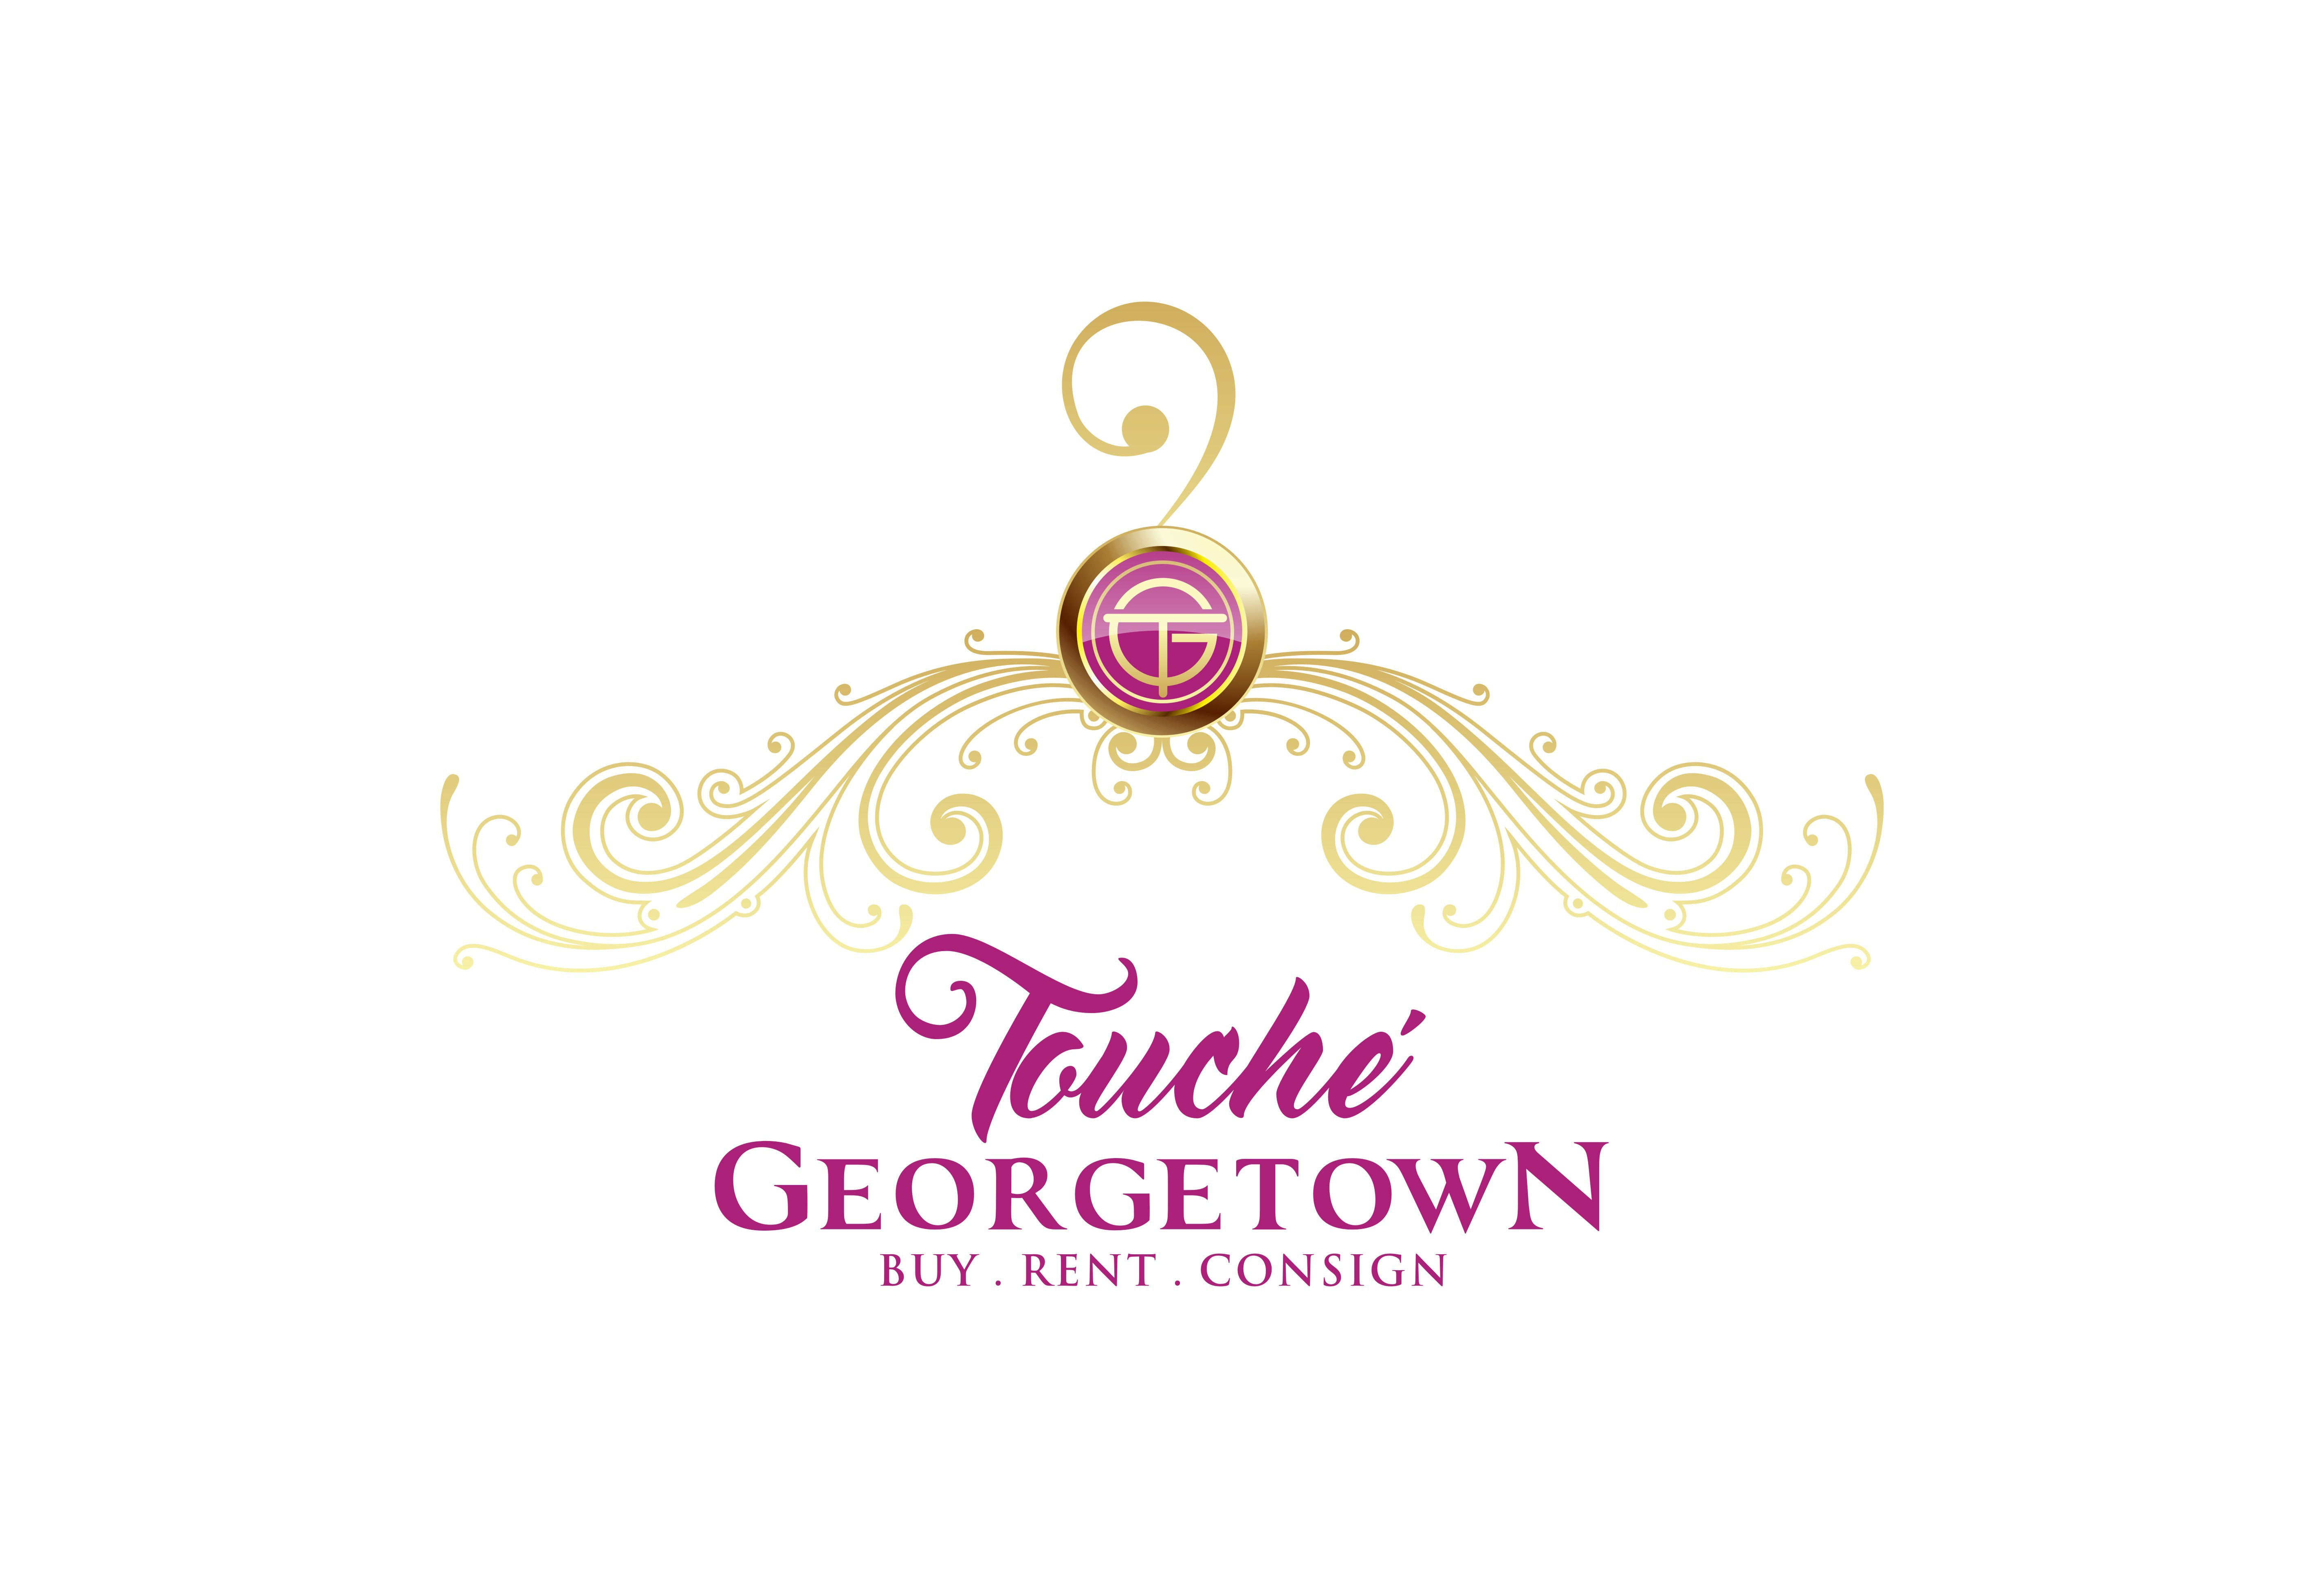 Create an iconic logo for a luxury clothing boutique in Georgetown,DC